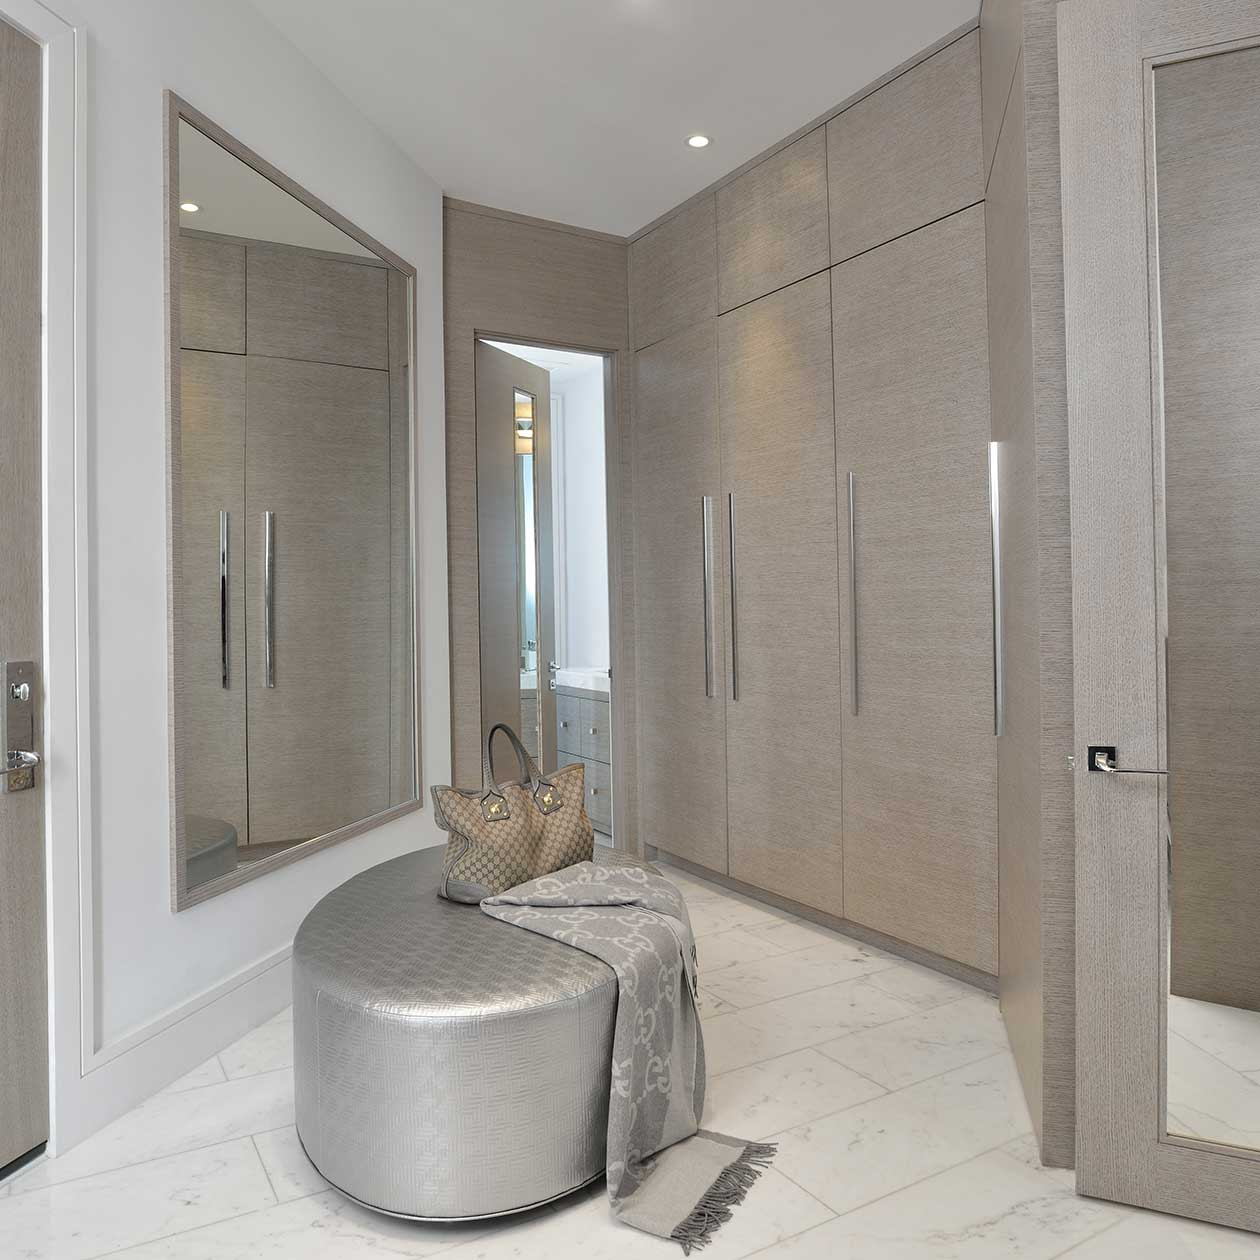 d Contemporary Mud room